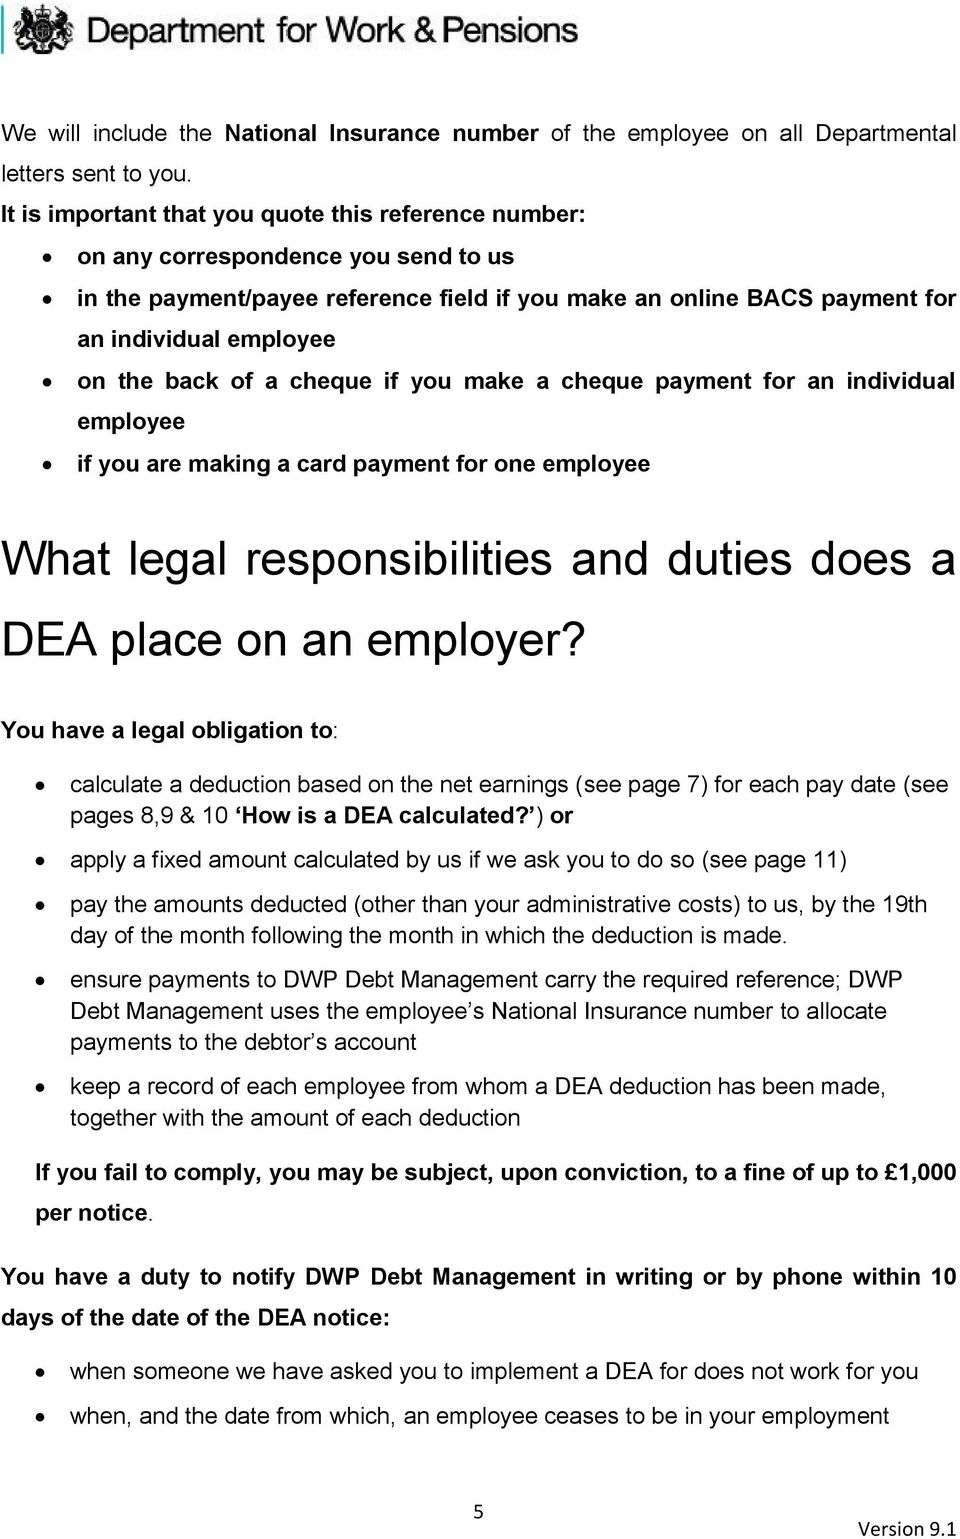 back of a cheque if you make a cheque payment for an individual employee if you are making a card payment for one employee What legal responsibilities and duties does a DEA place on an employer?